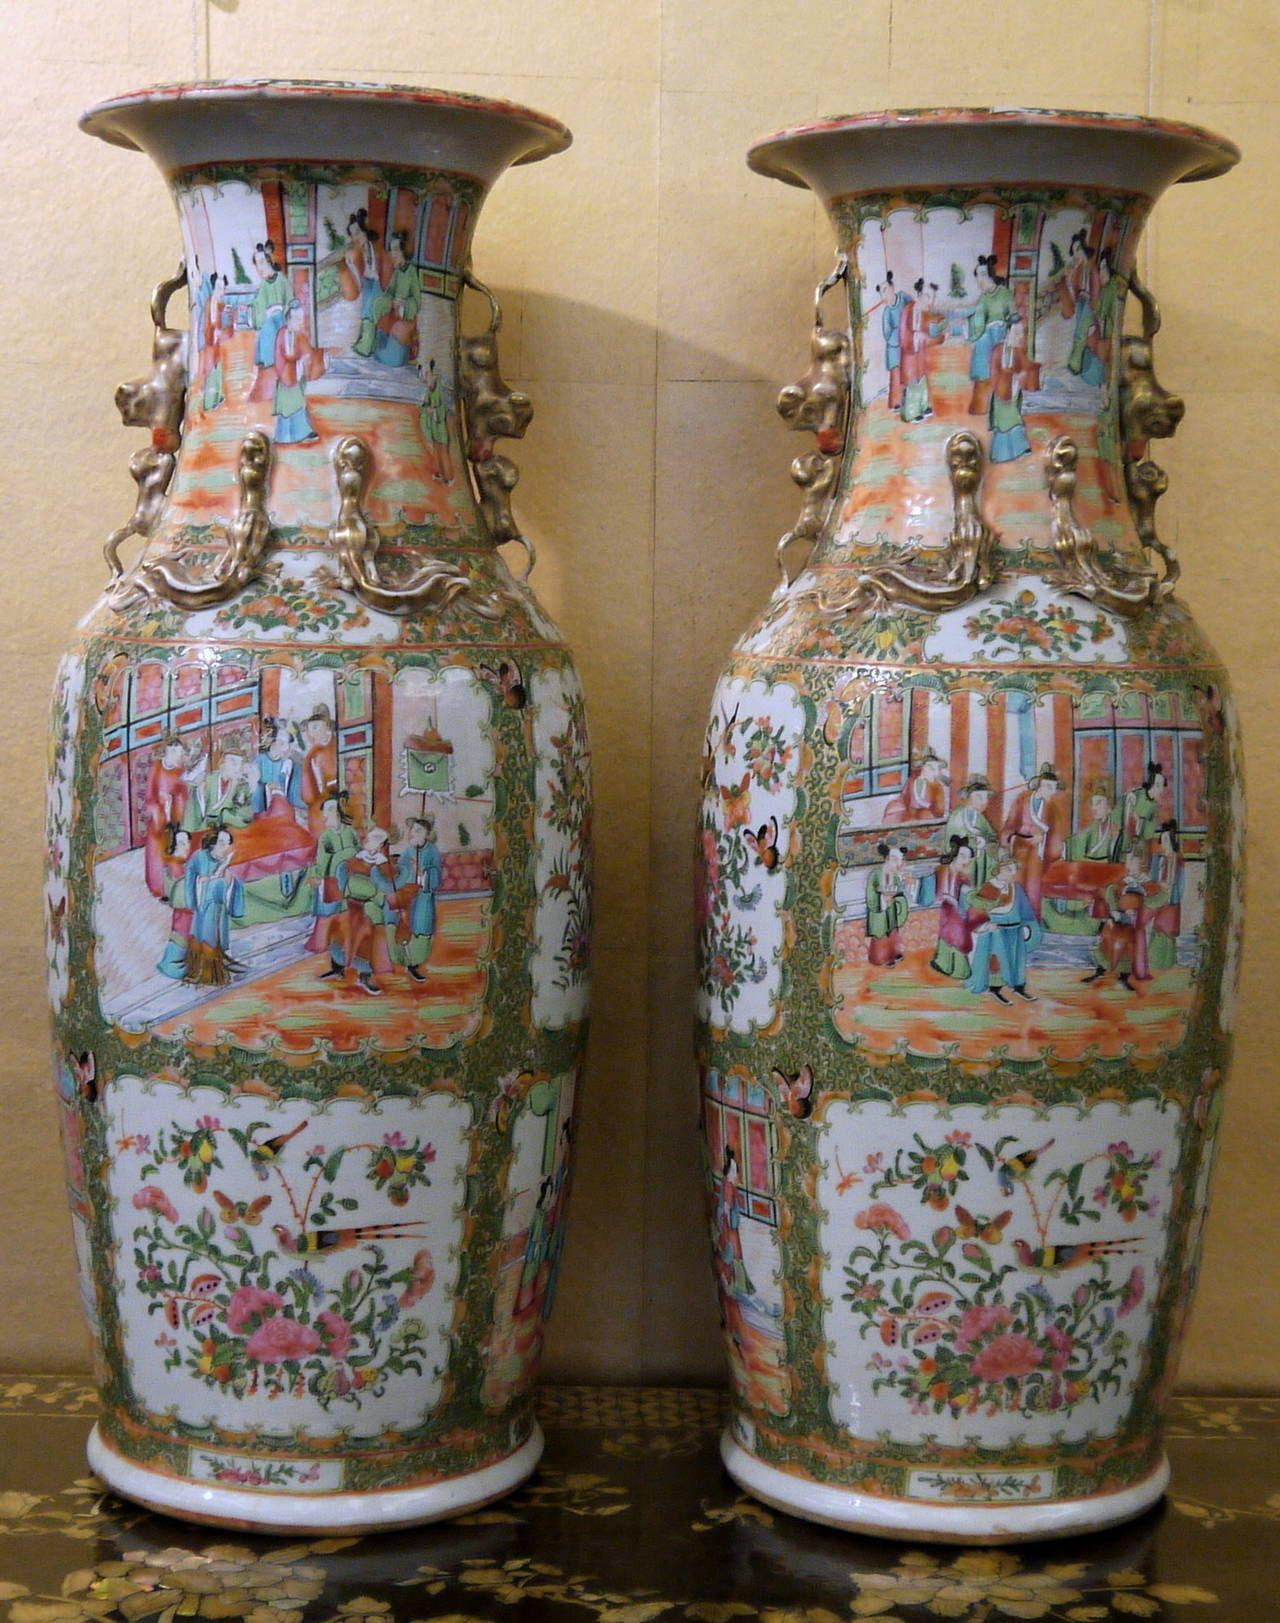 chinese rose medallion vase of pair of large chinese rose canton vases in 2018 artwork regarding pair of large chinese rose canton vases 2